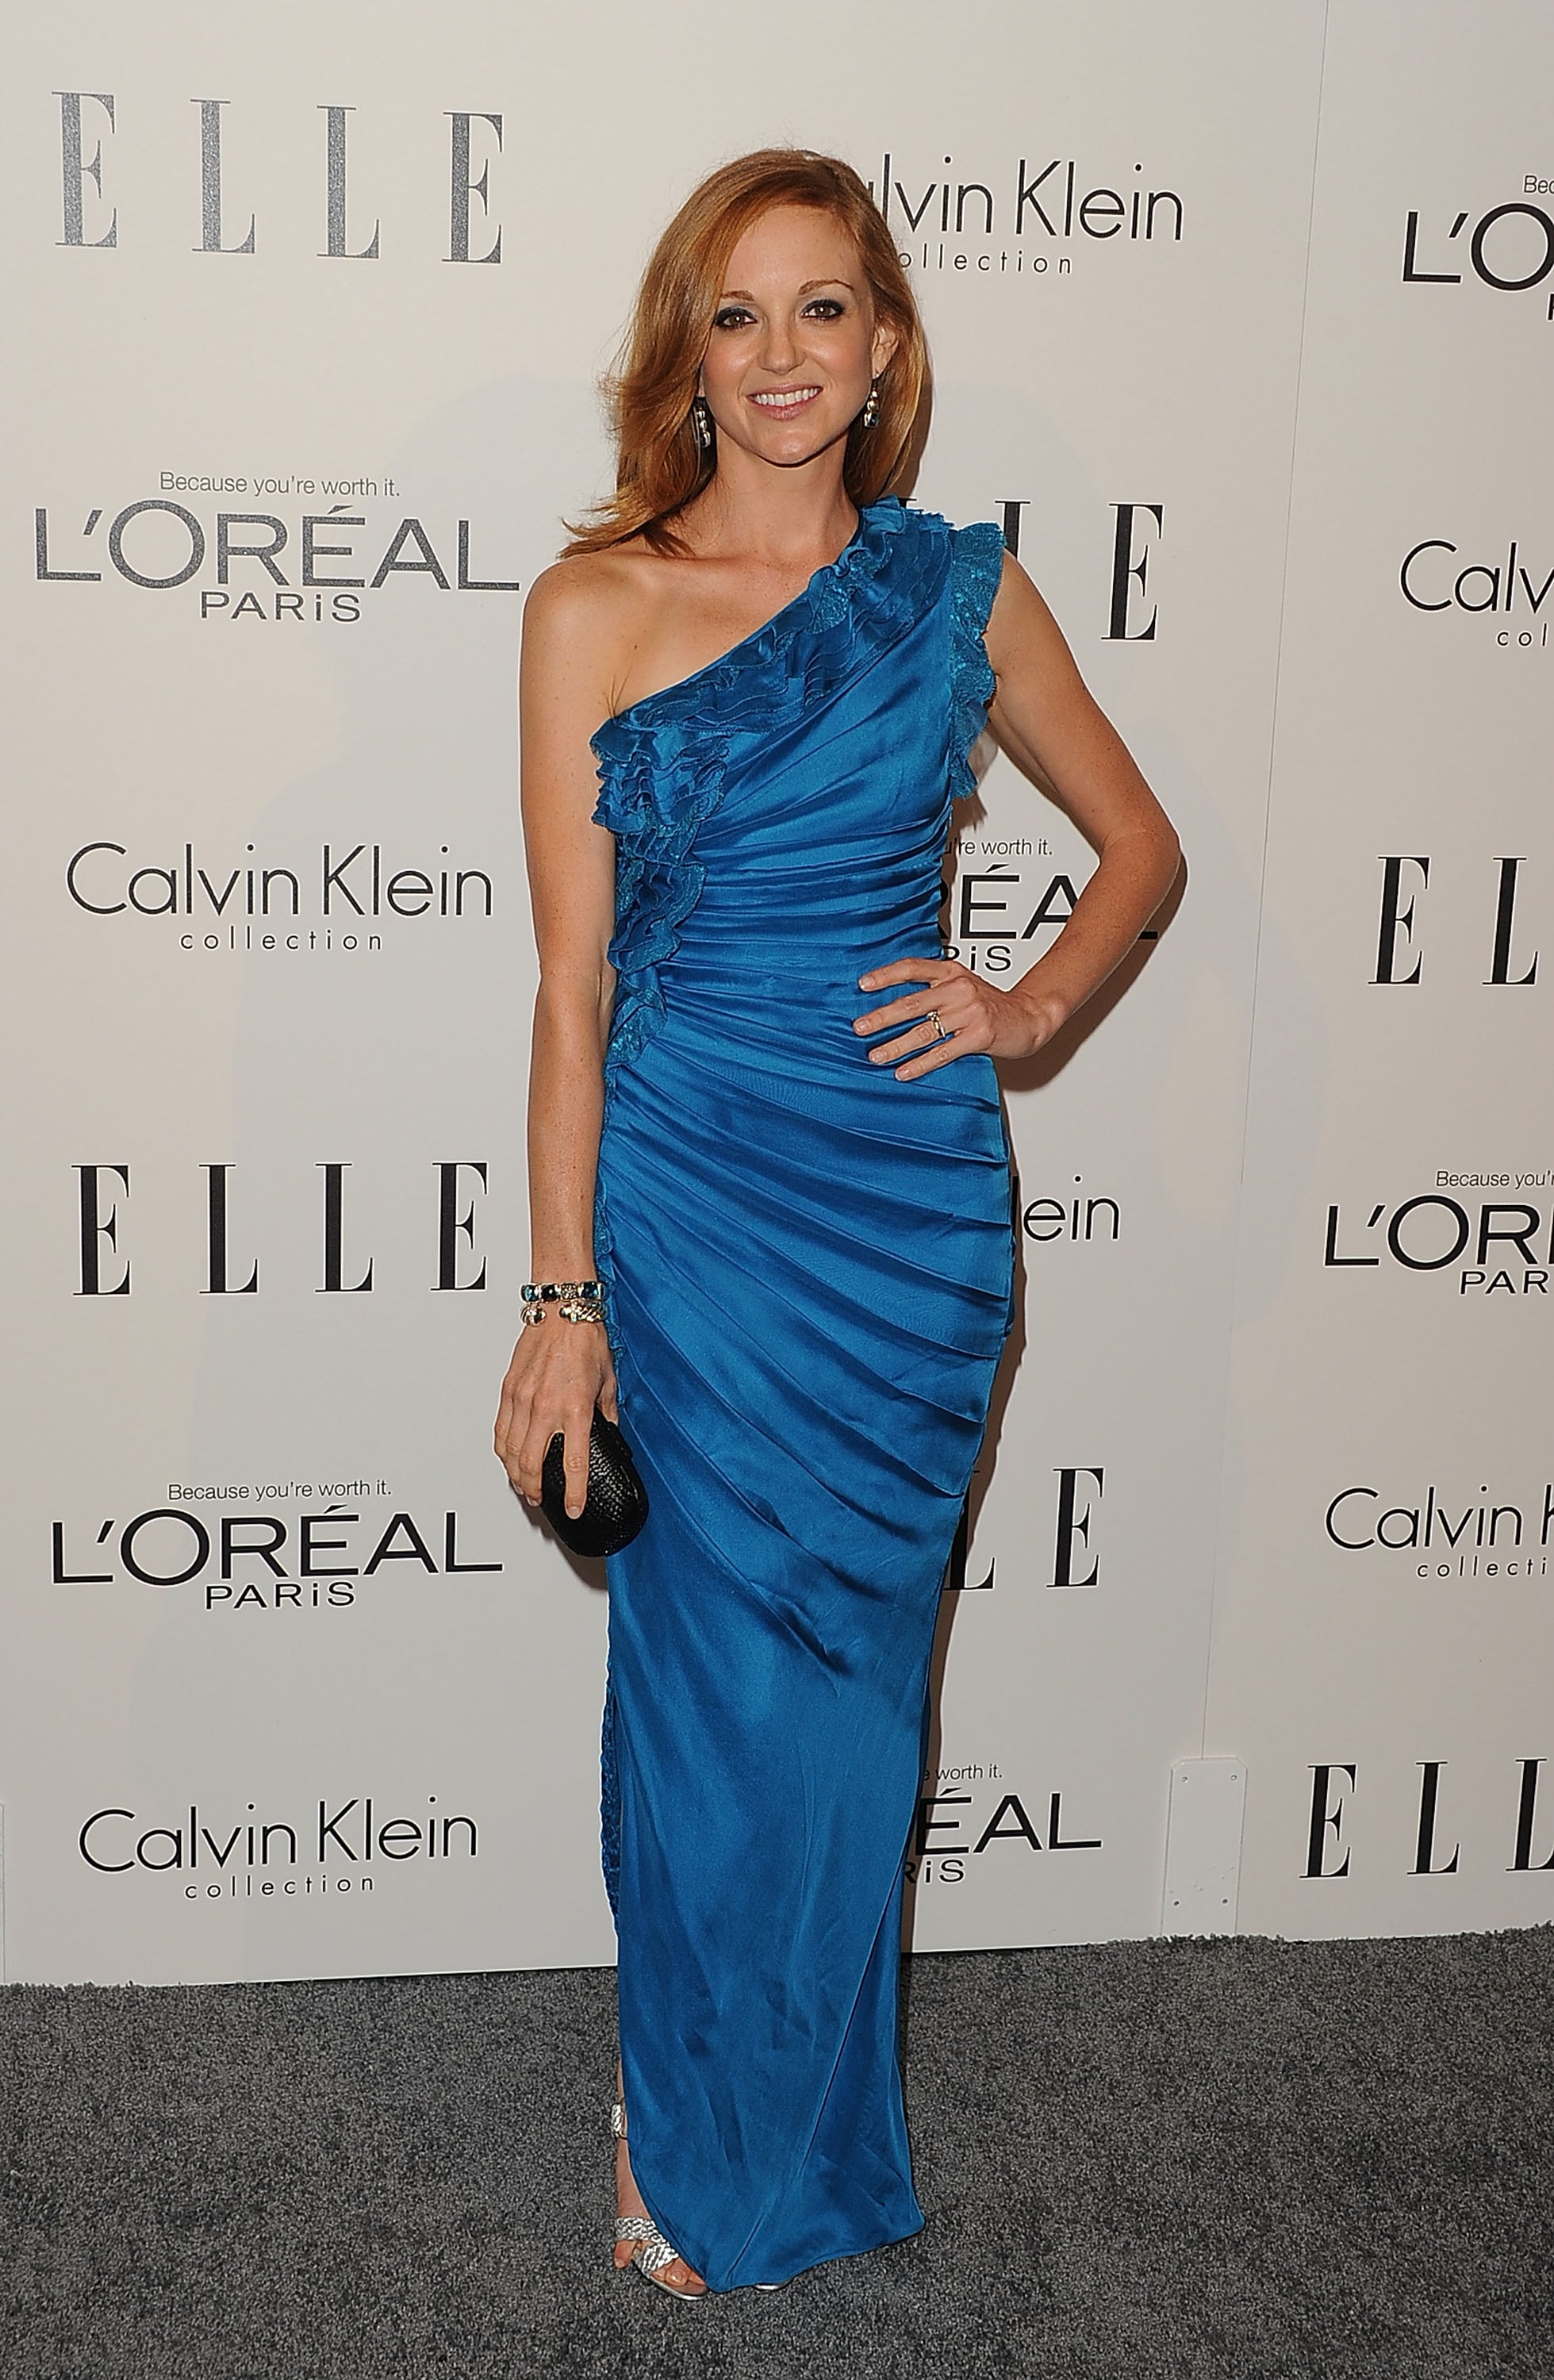 Jayma Mays in a ruffled blue dress.